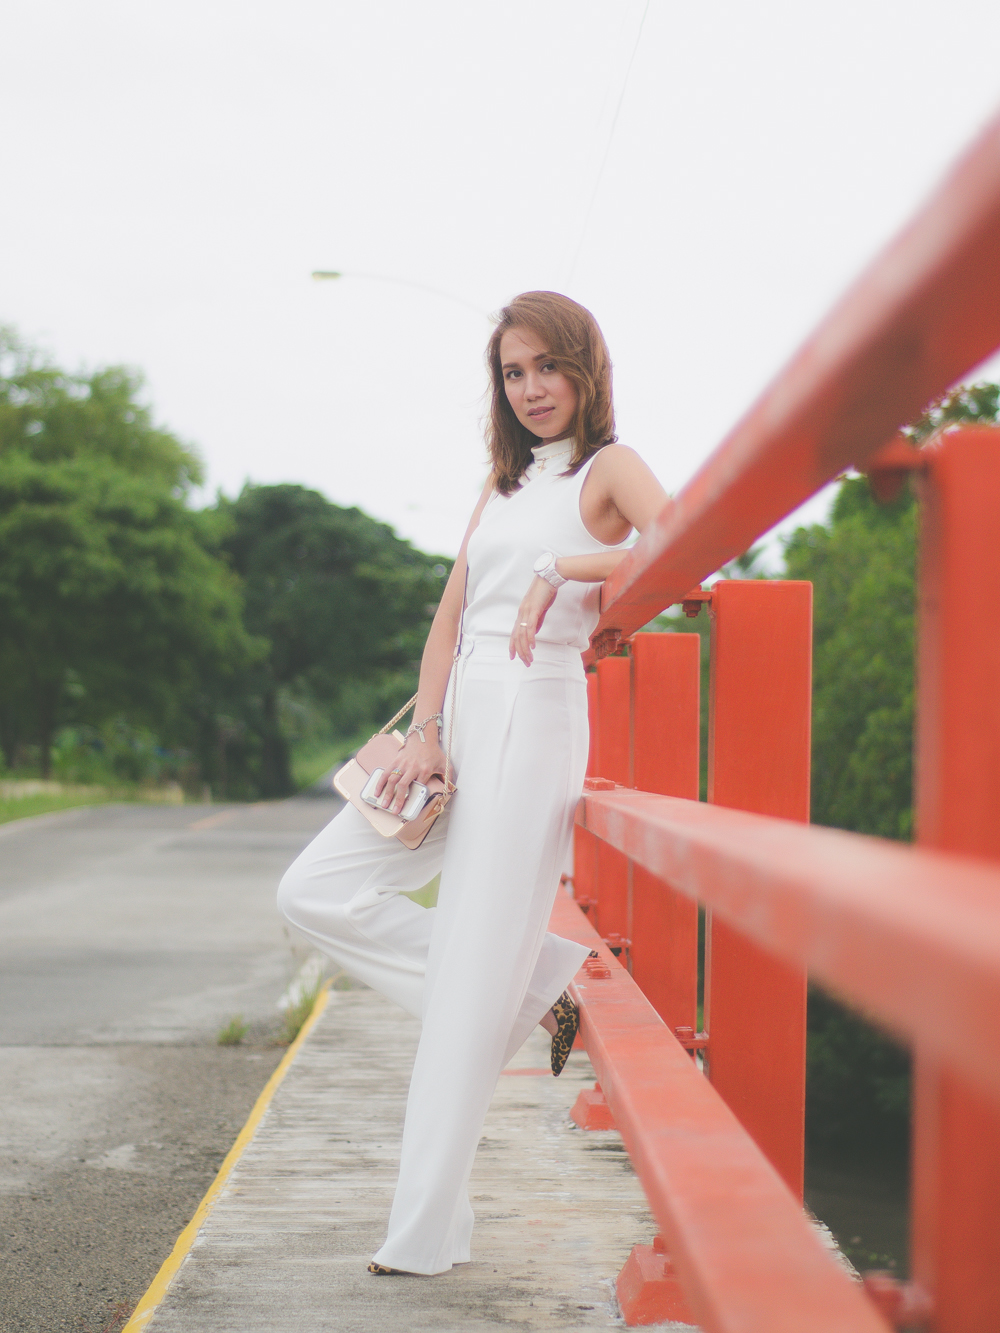 All White Outfit, Wedding Outfit Ideas, Palazzo Pants, Cebu Fashion Blogger, Cebu Blogger, Cebu Beauty Blogger, All White, River Island, Zara, Palazzo Pants, asian blogger, Philippine blogger, lifestyle blogger, online influencer, social media influencer, cebu online influencer, cebu bloggers, Cebu Social media influencers, Philippine Bloggers